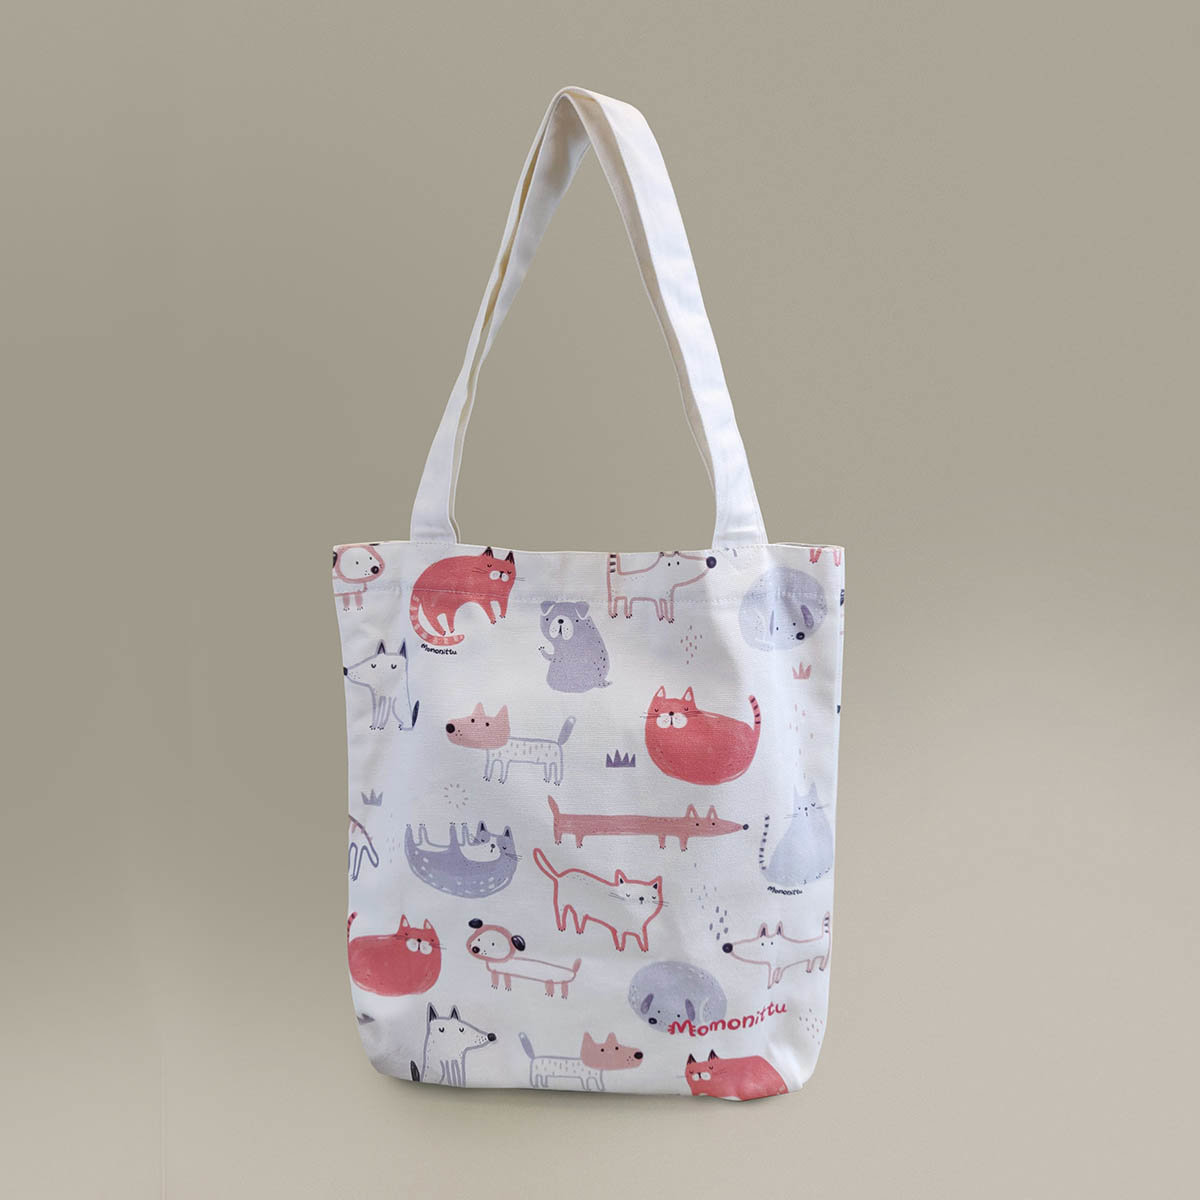 Tote Bag with Overall Print